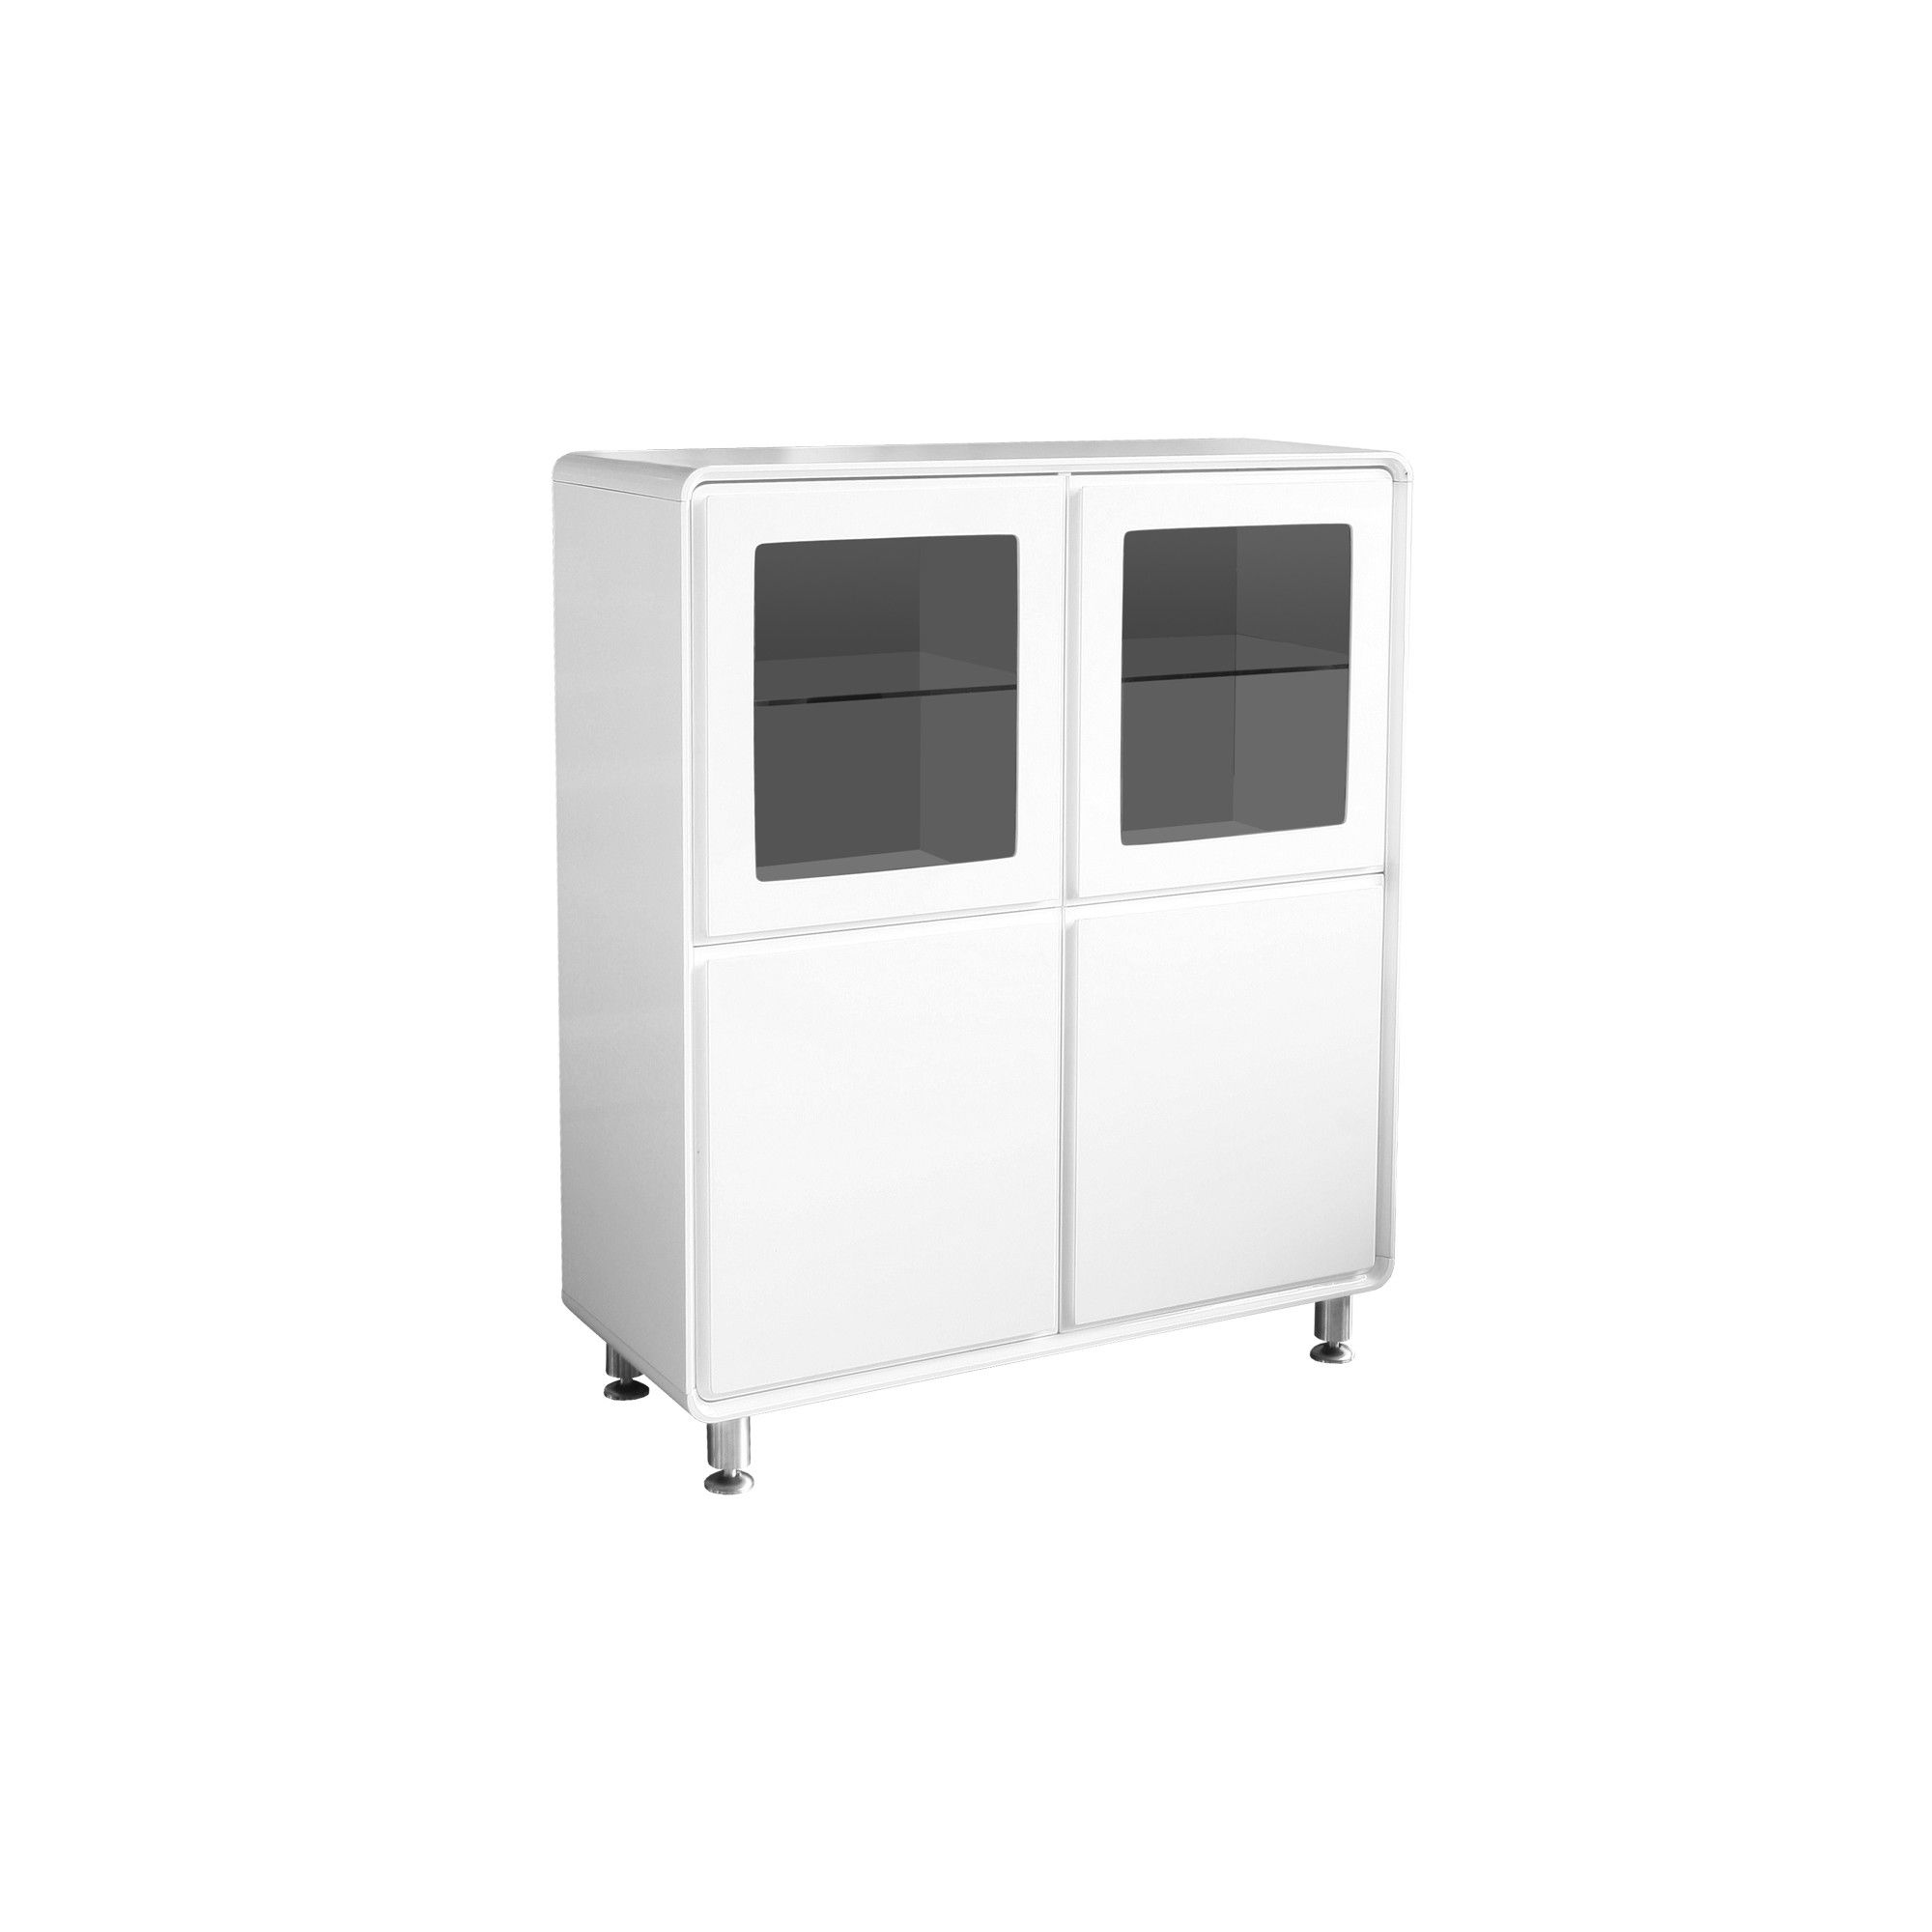 Home Essence Edana Storage Unit - White at Tesco Direct